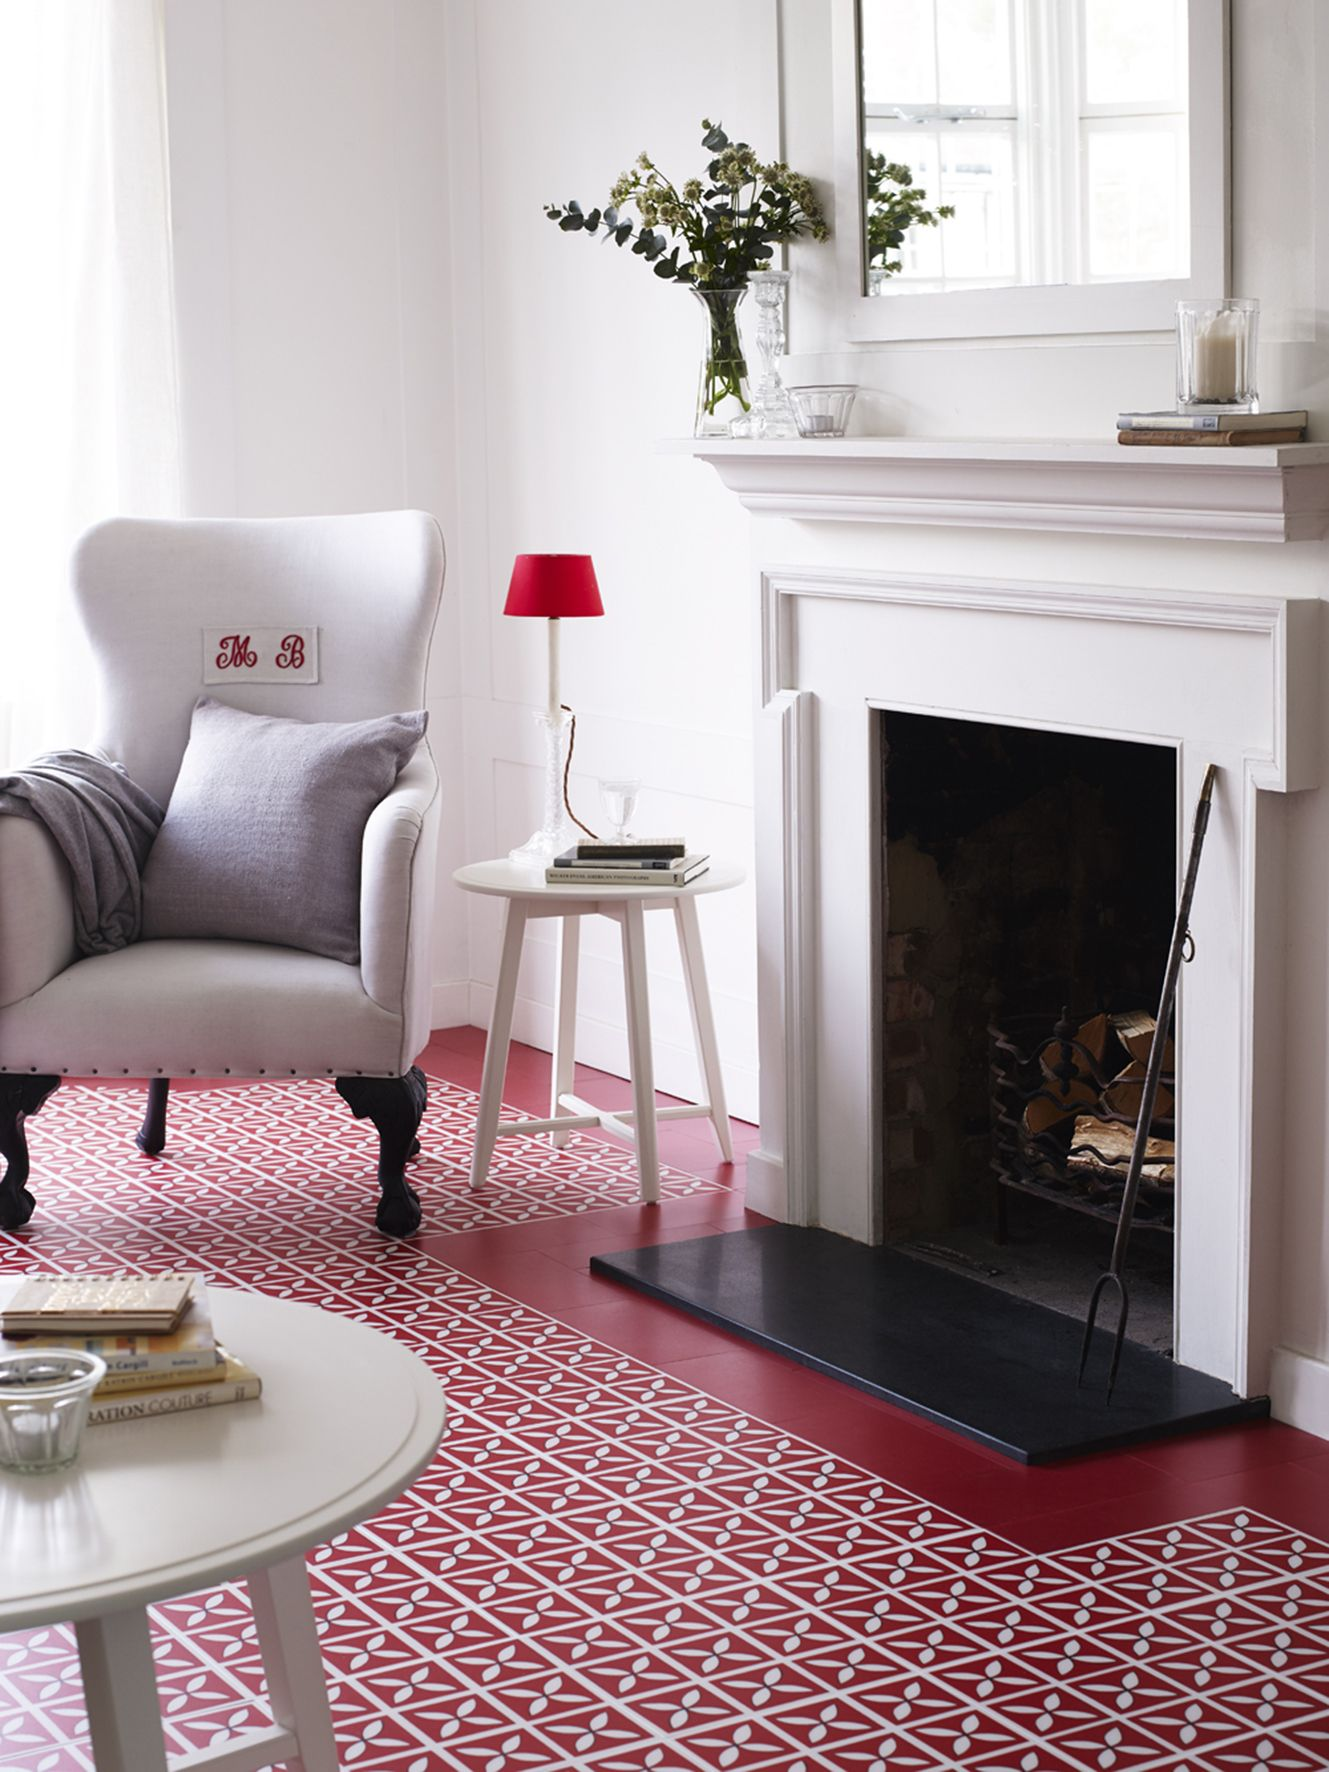 Create A Statement In Homes With Harvey Marias Beautifully Vibrant Red Vinyl Floor Tiles